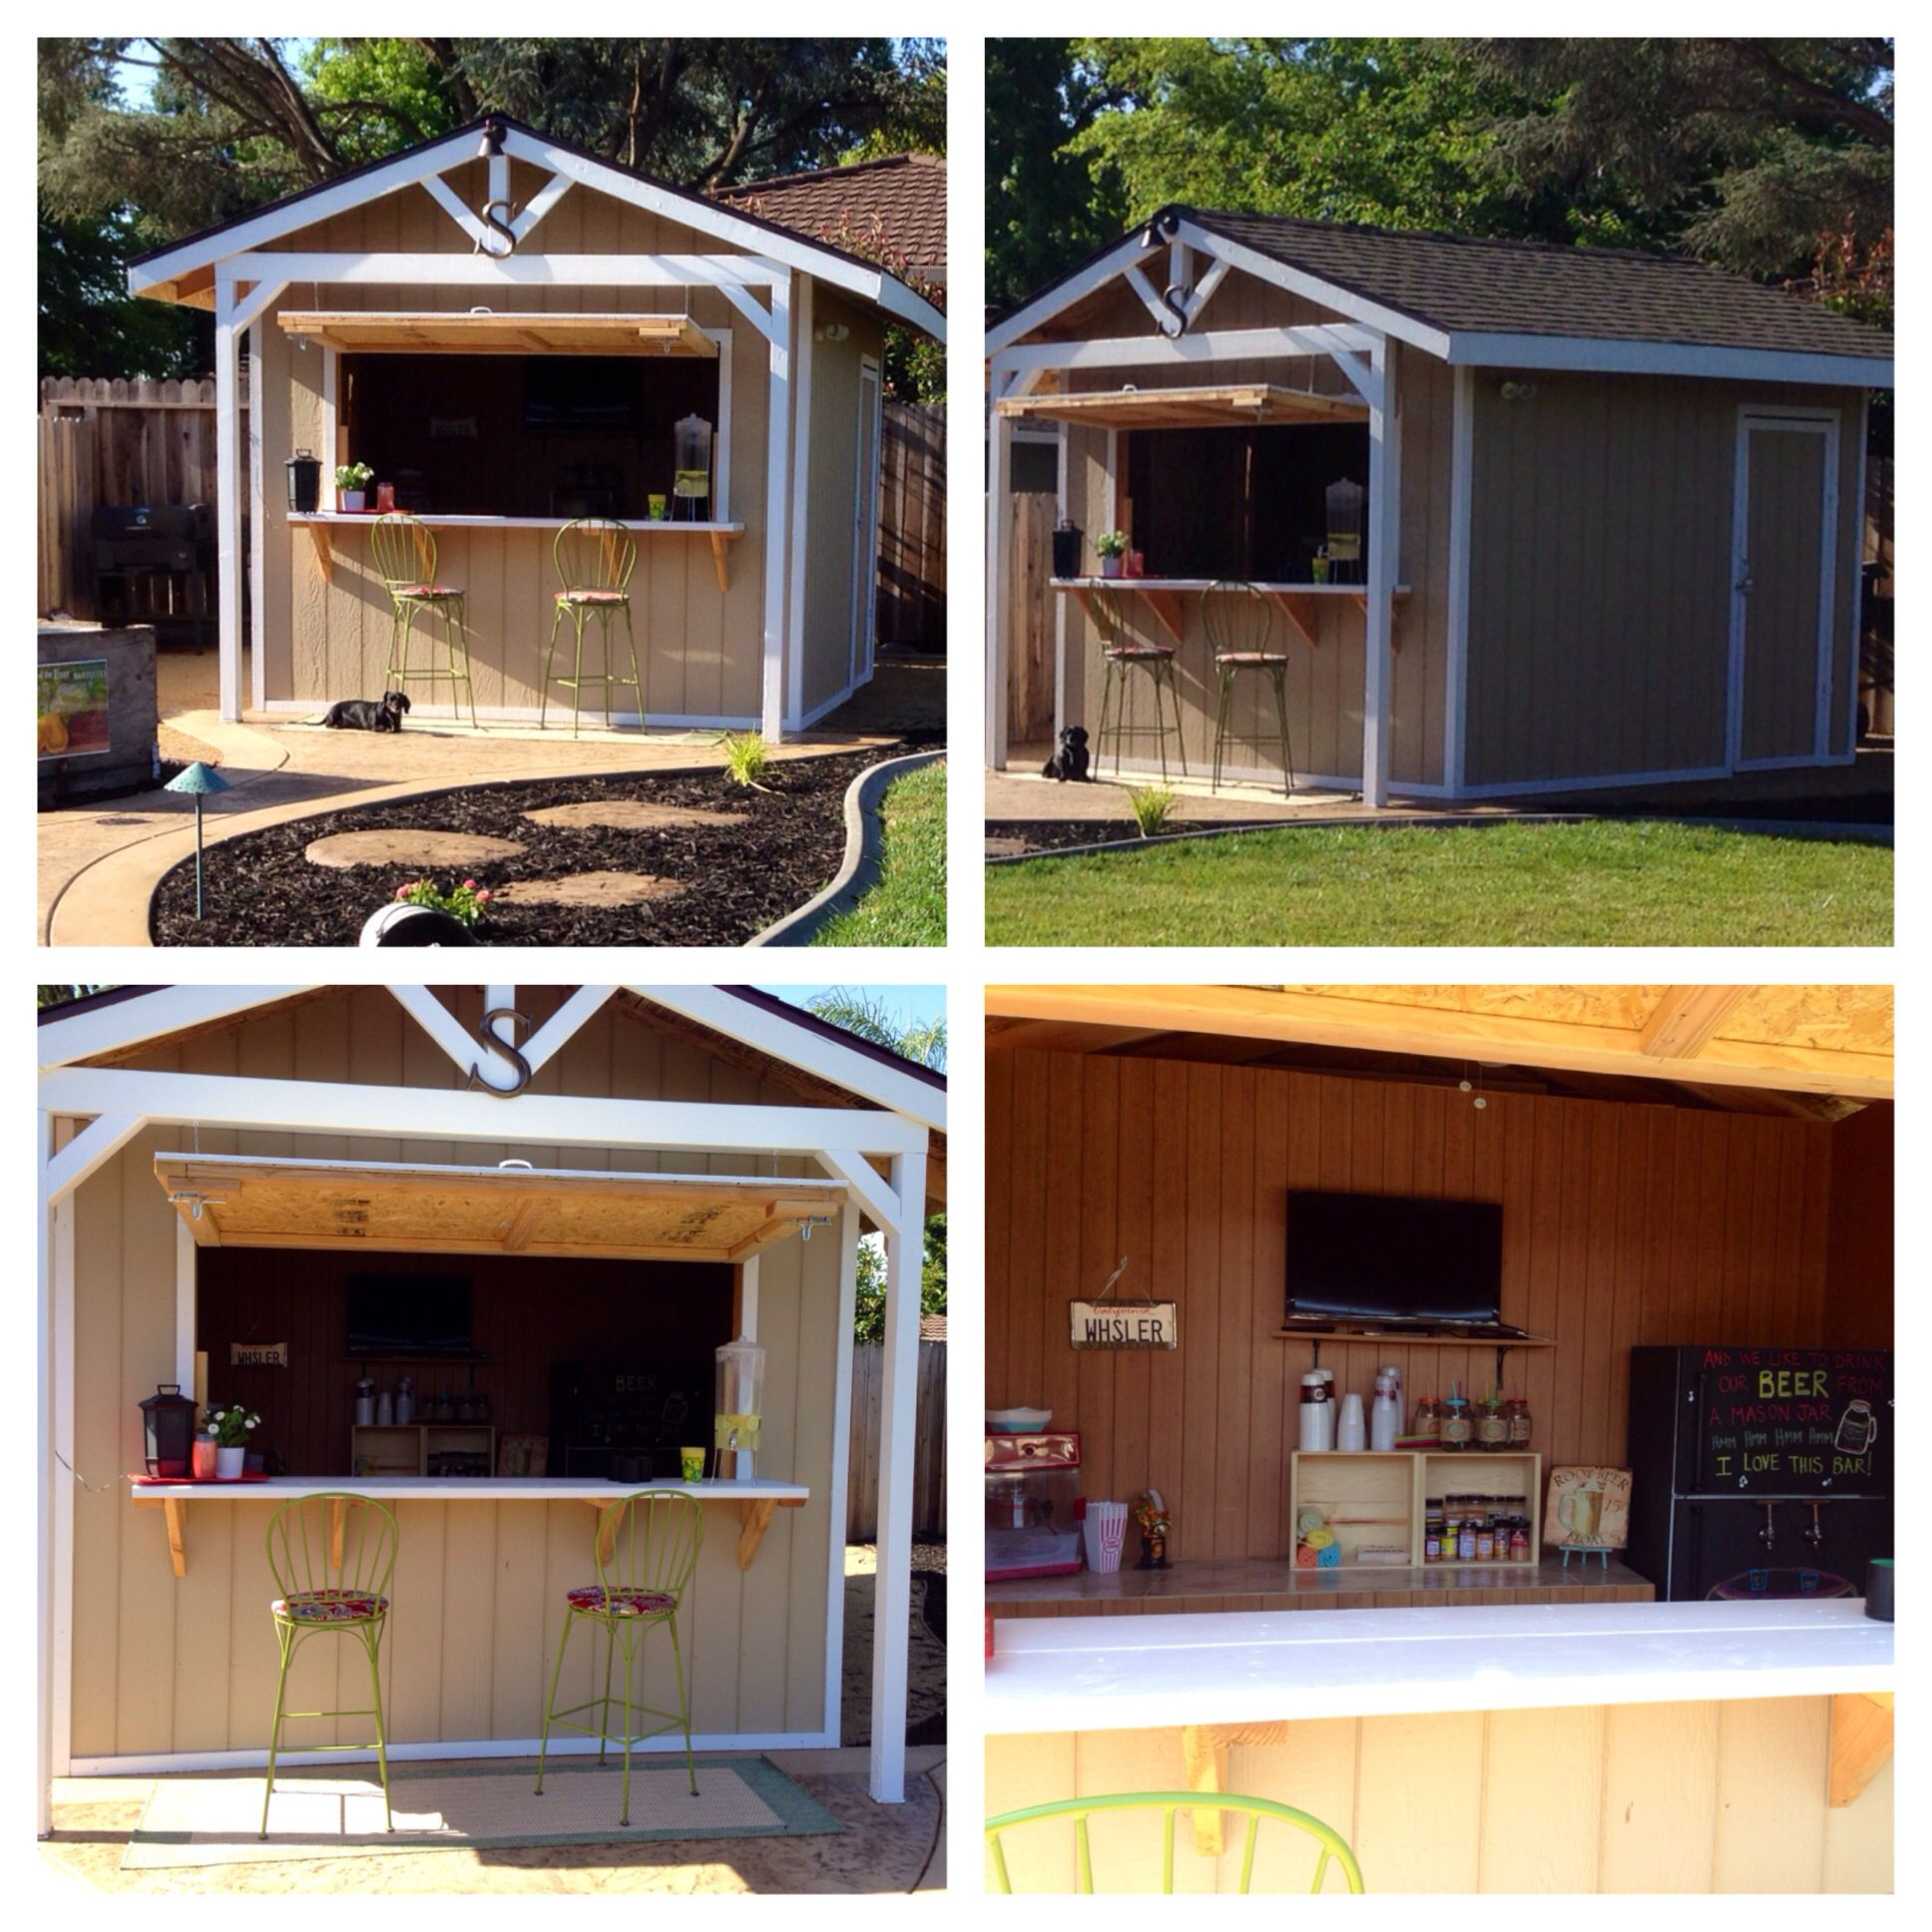 This Is Our Custom Made Party Bar Shed! It's 10x12 With